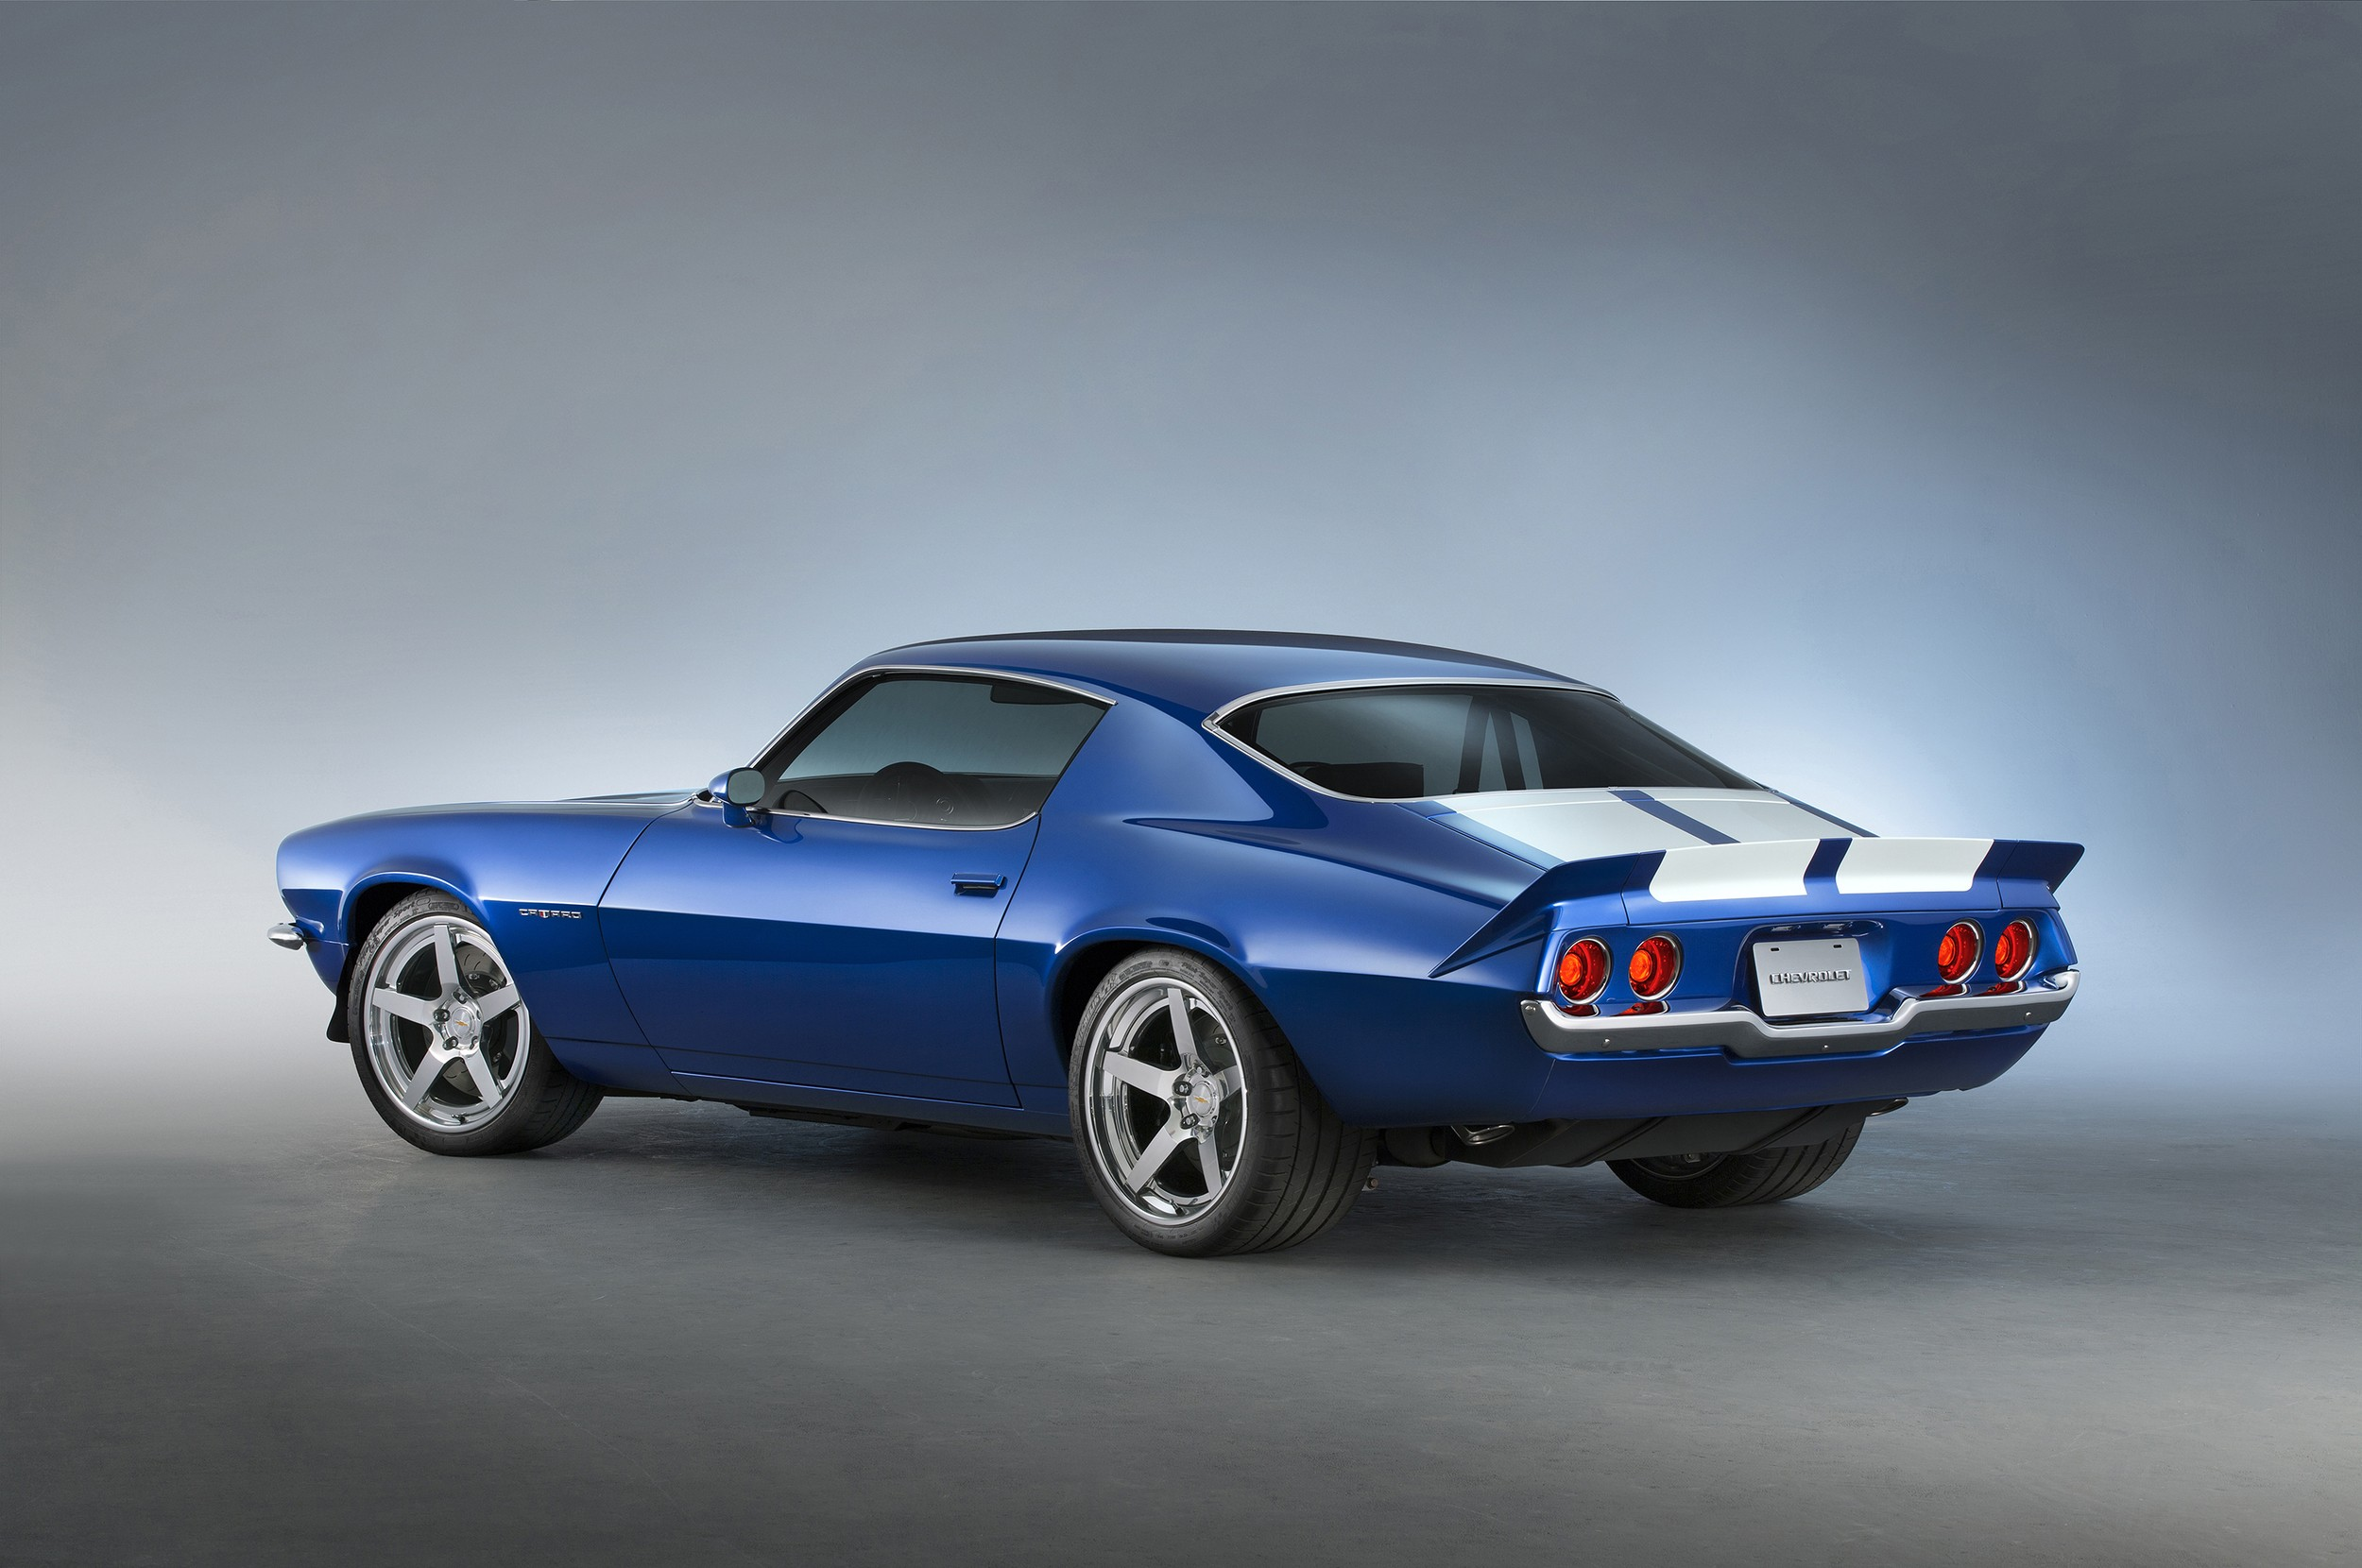 1970 Camaro Gets Corvette Z06 Lt4 Supercharged V8 As Crate